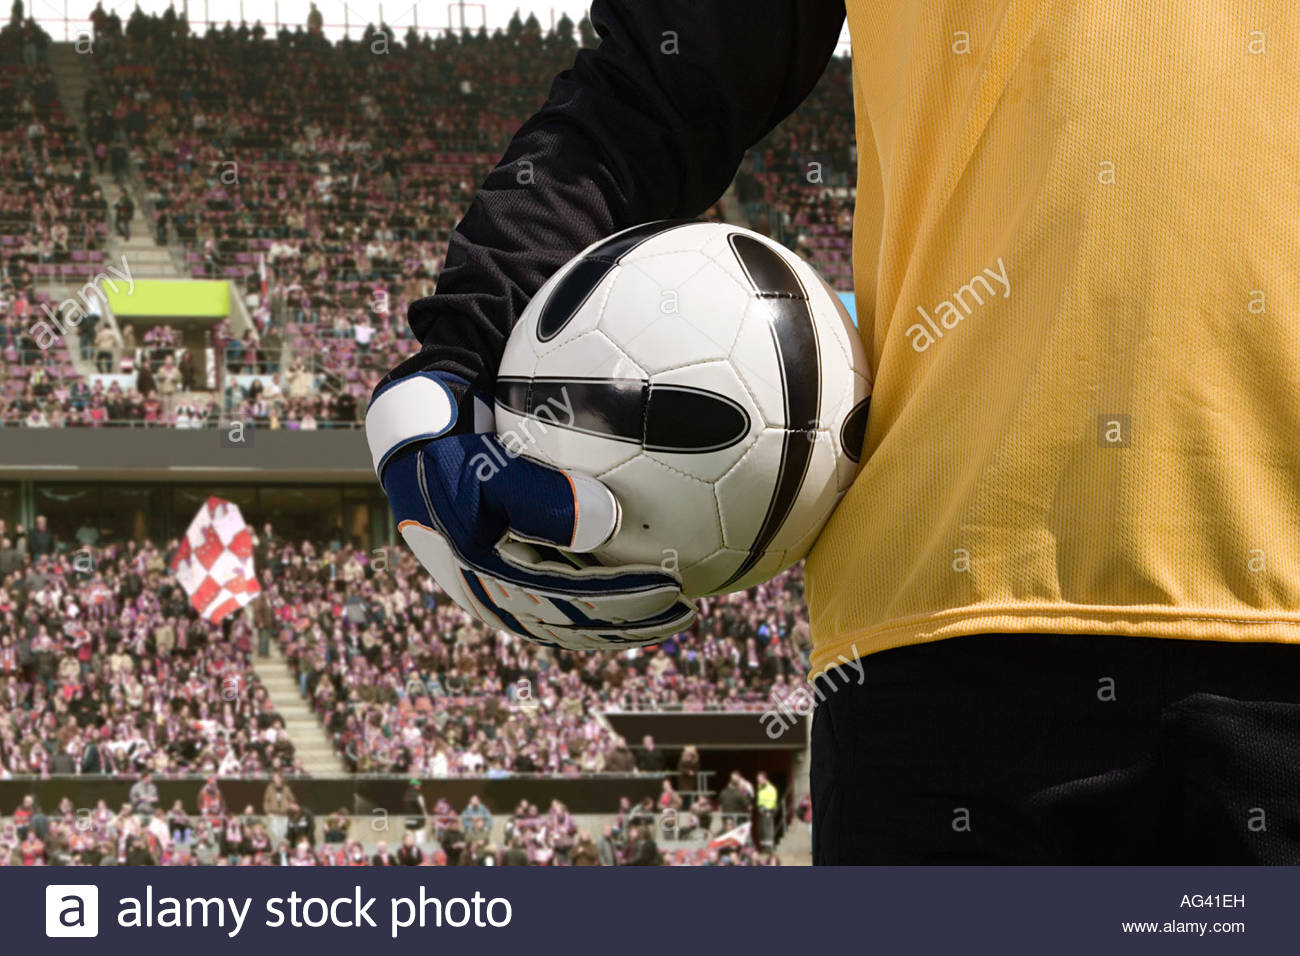 Goalkeeper holding a football - Stock Image